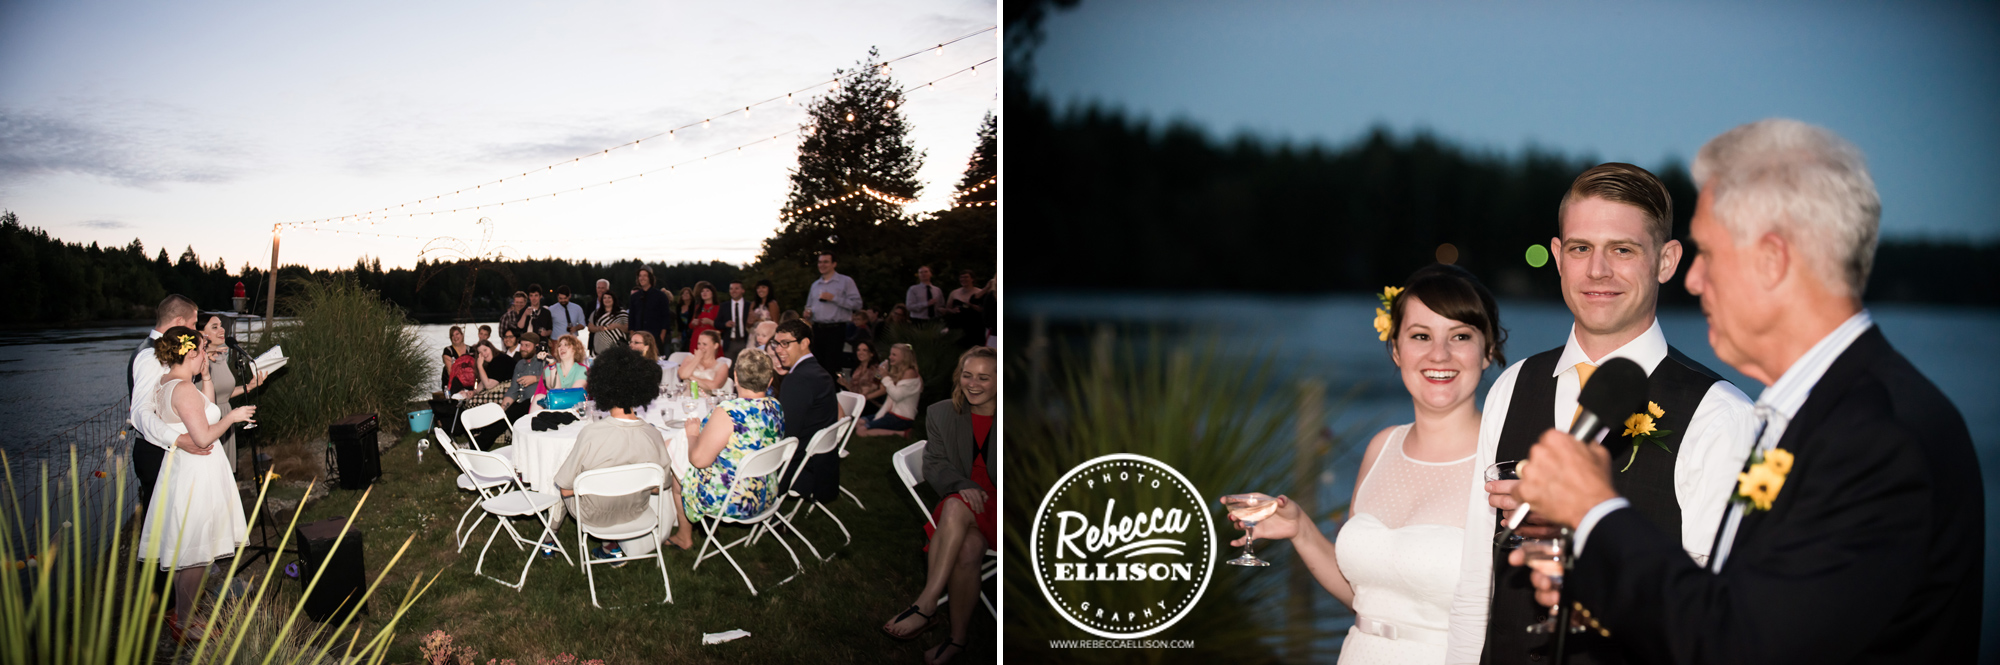 Toasts at a backyard beach house wedding reception near seattle photographed by Rebecca Ellison Photography